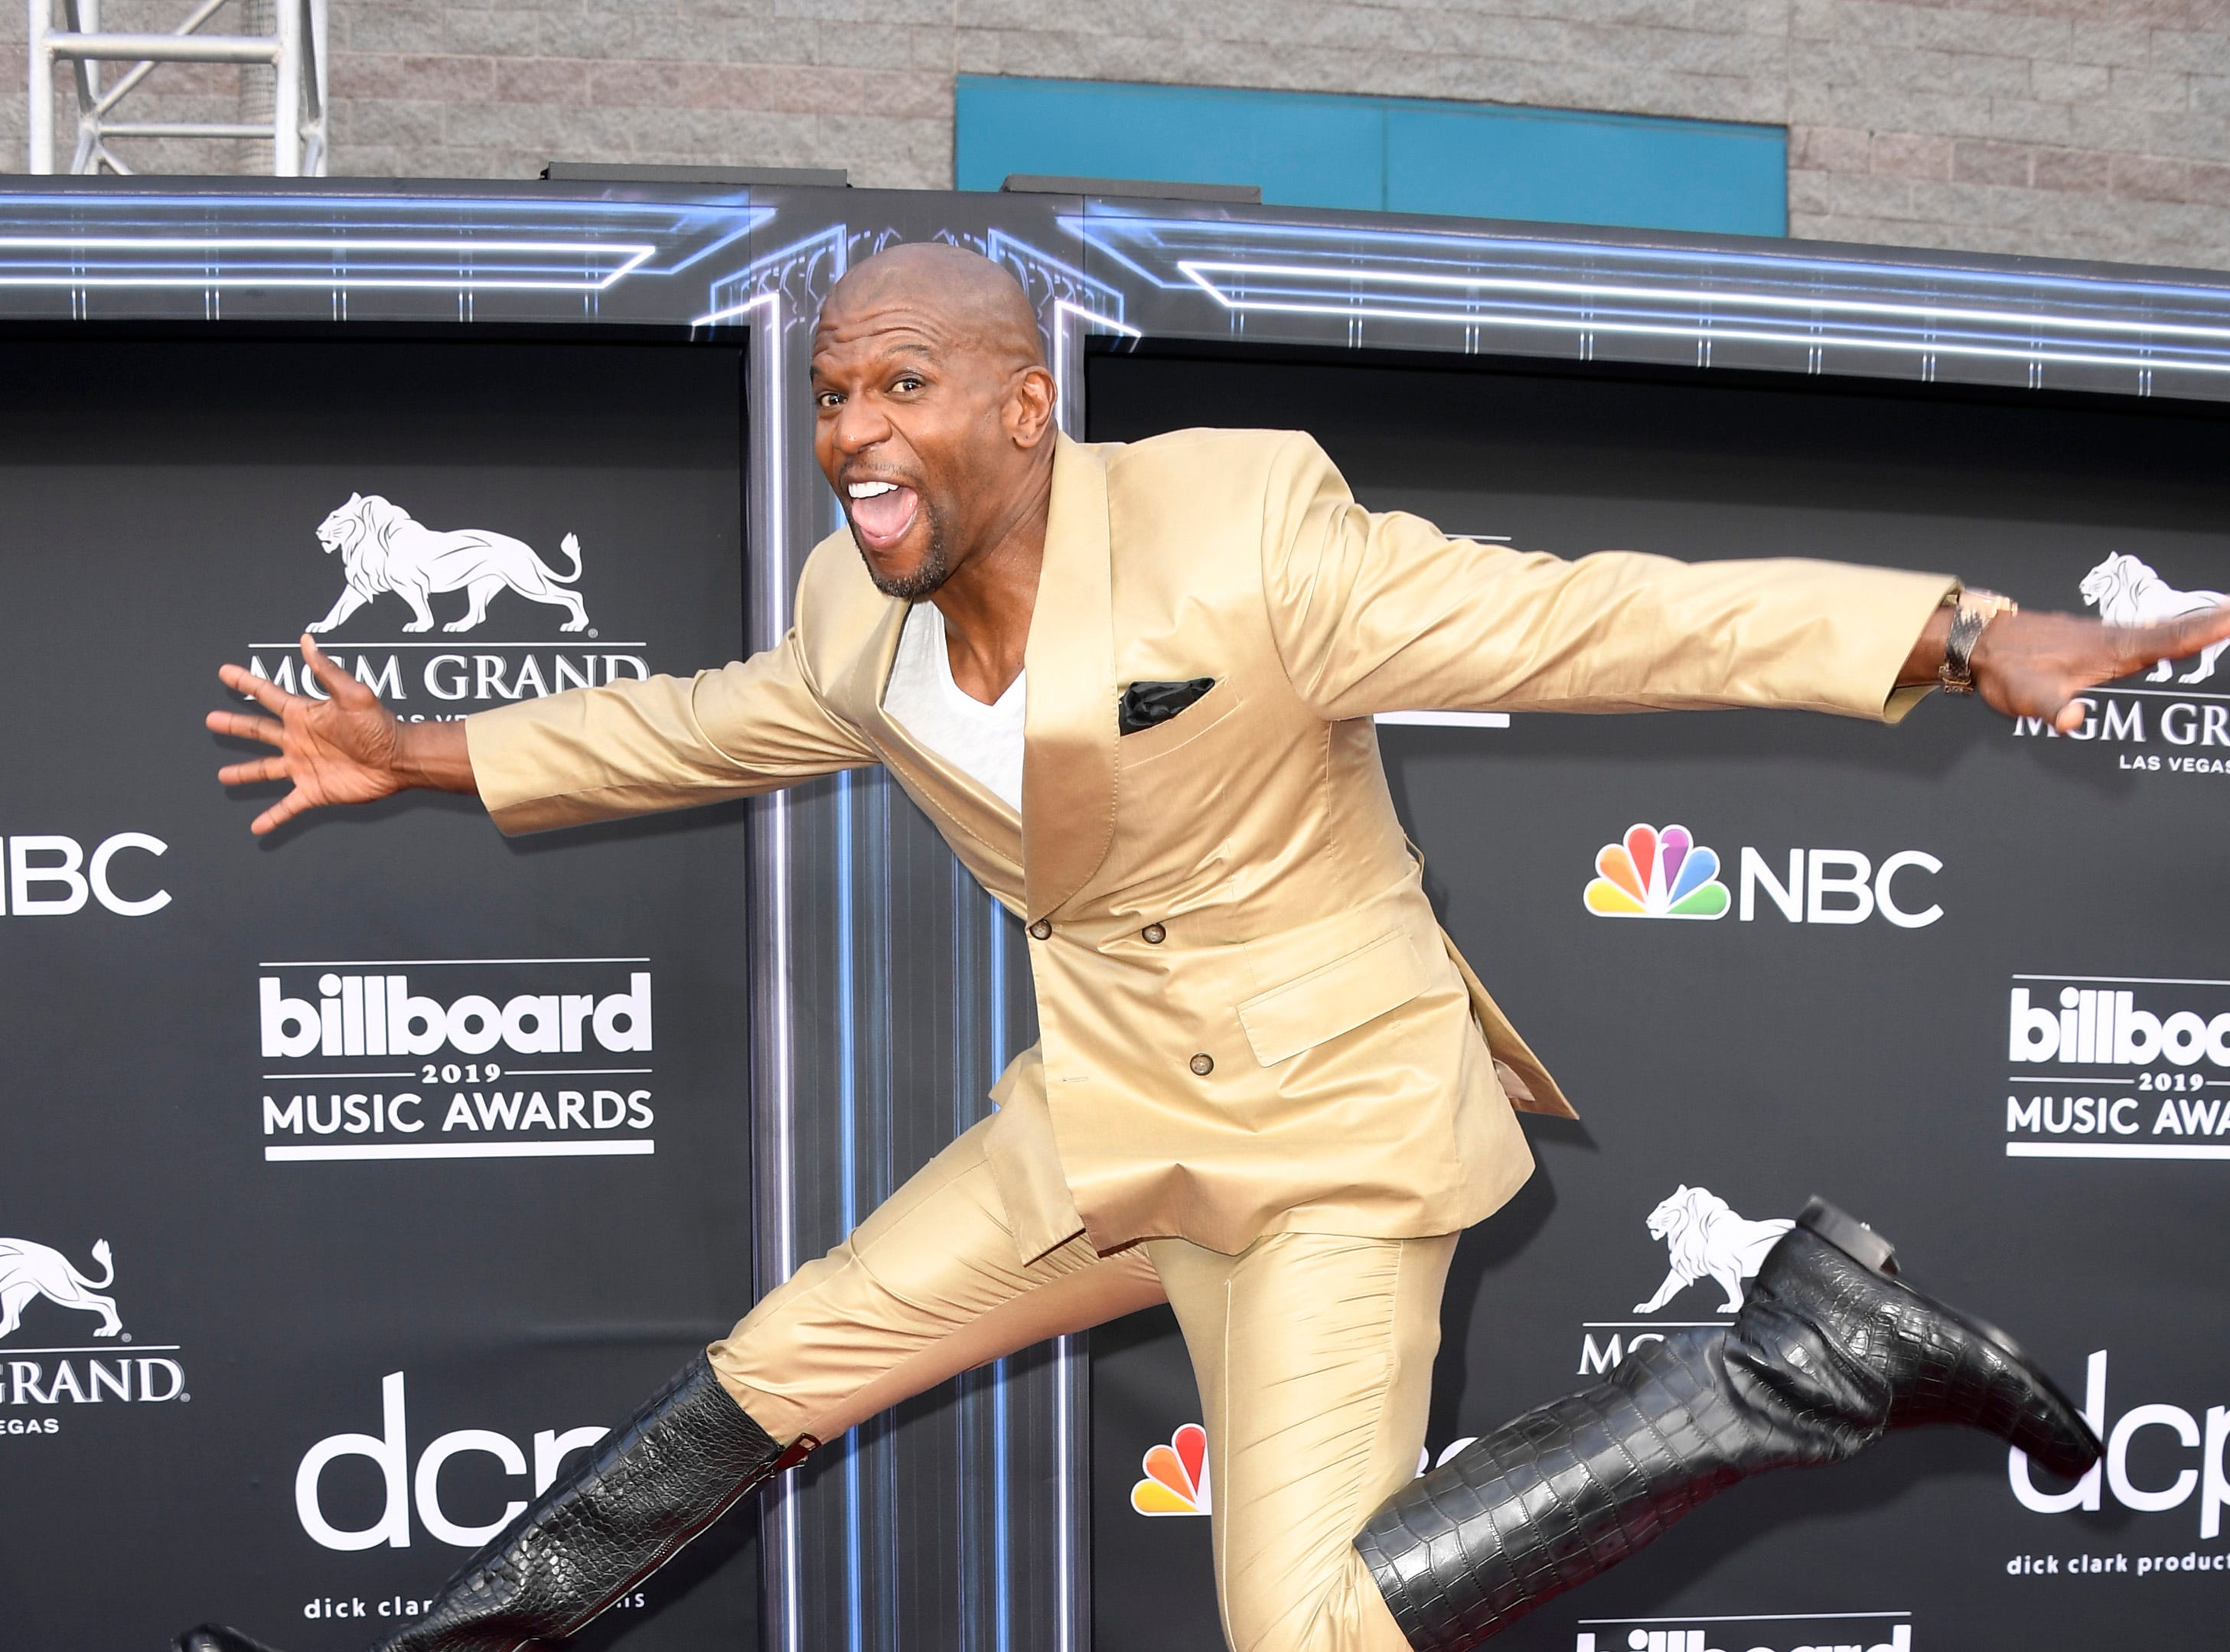 Terry Crews attends the 2019 Billboard Music Awards at MGM Grand Garden Arena on May 01, 2019 in Las Vegas, Nevada.